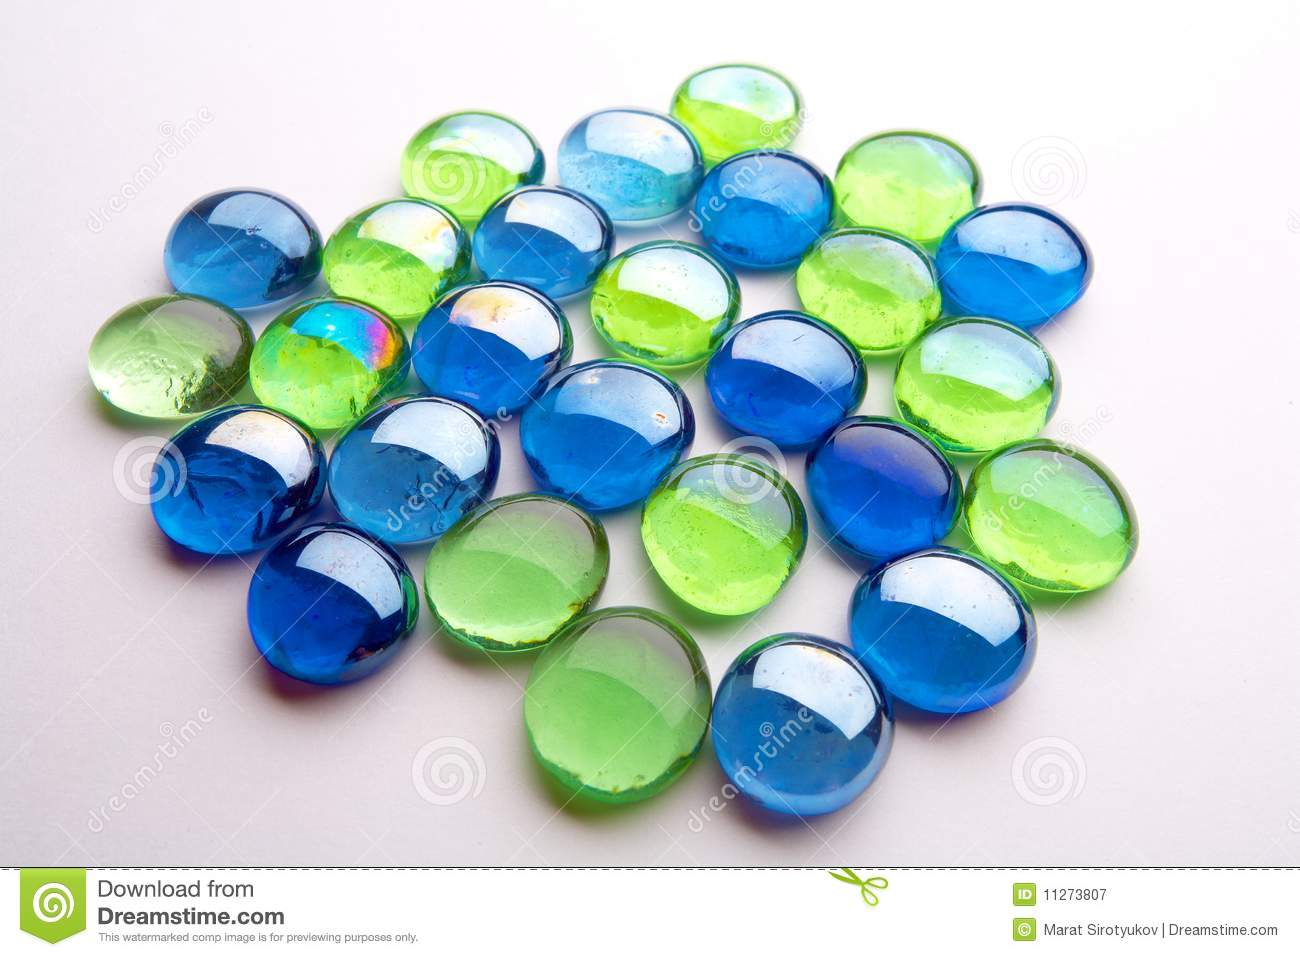 Glass Spheres Royalty Free Stock Photography - Image: 11273807